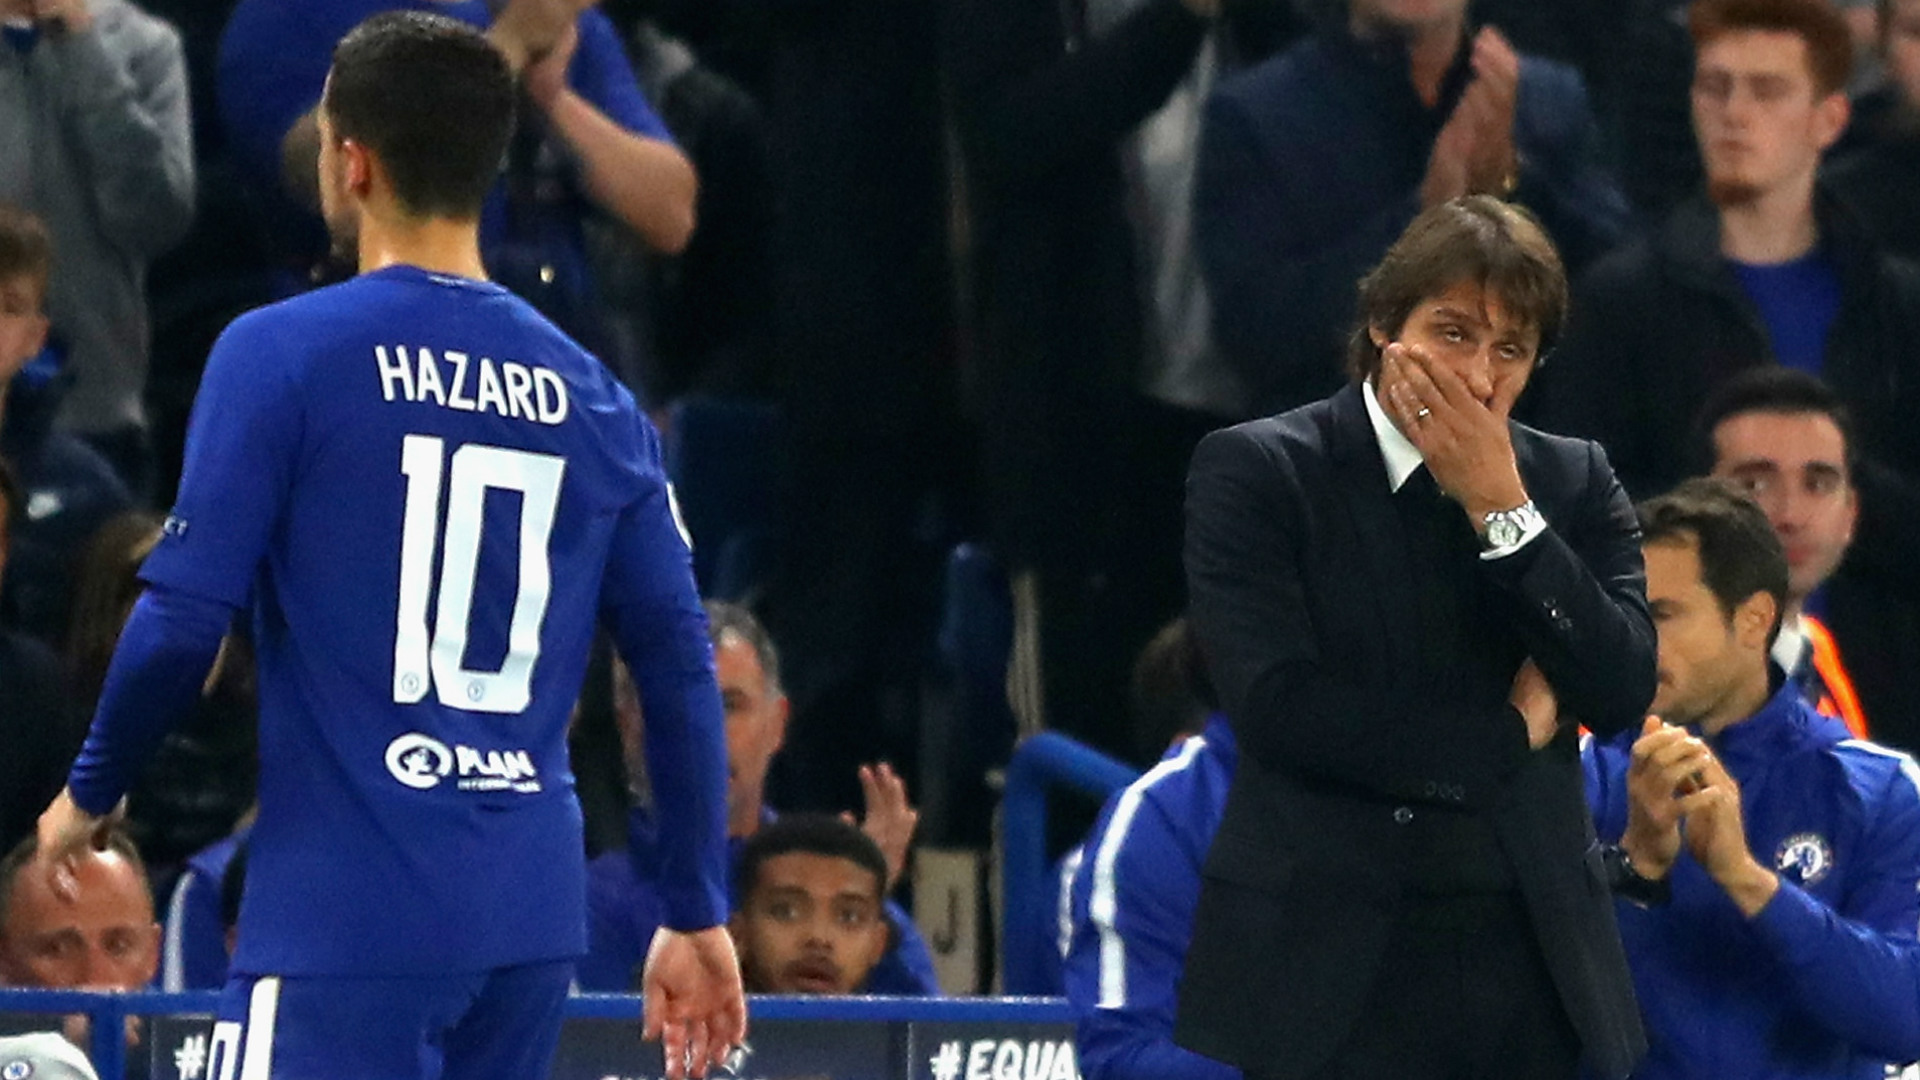 Chelsea players are reportedly disappointed with Antonio Conte amid slump